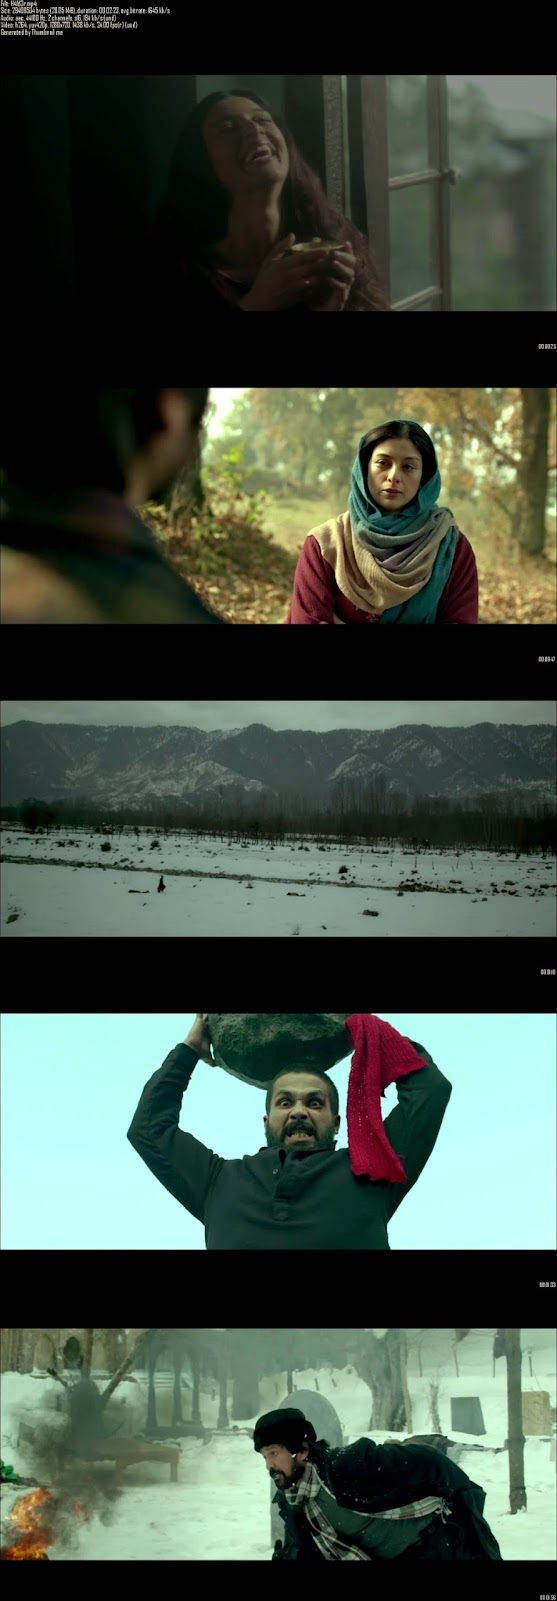 Mediafire Resumable Download Link For Teaser Promo Of Haider (2014)